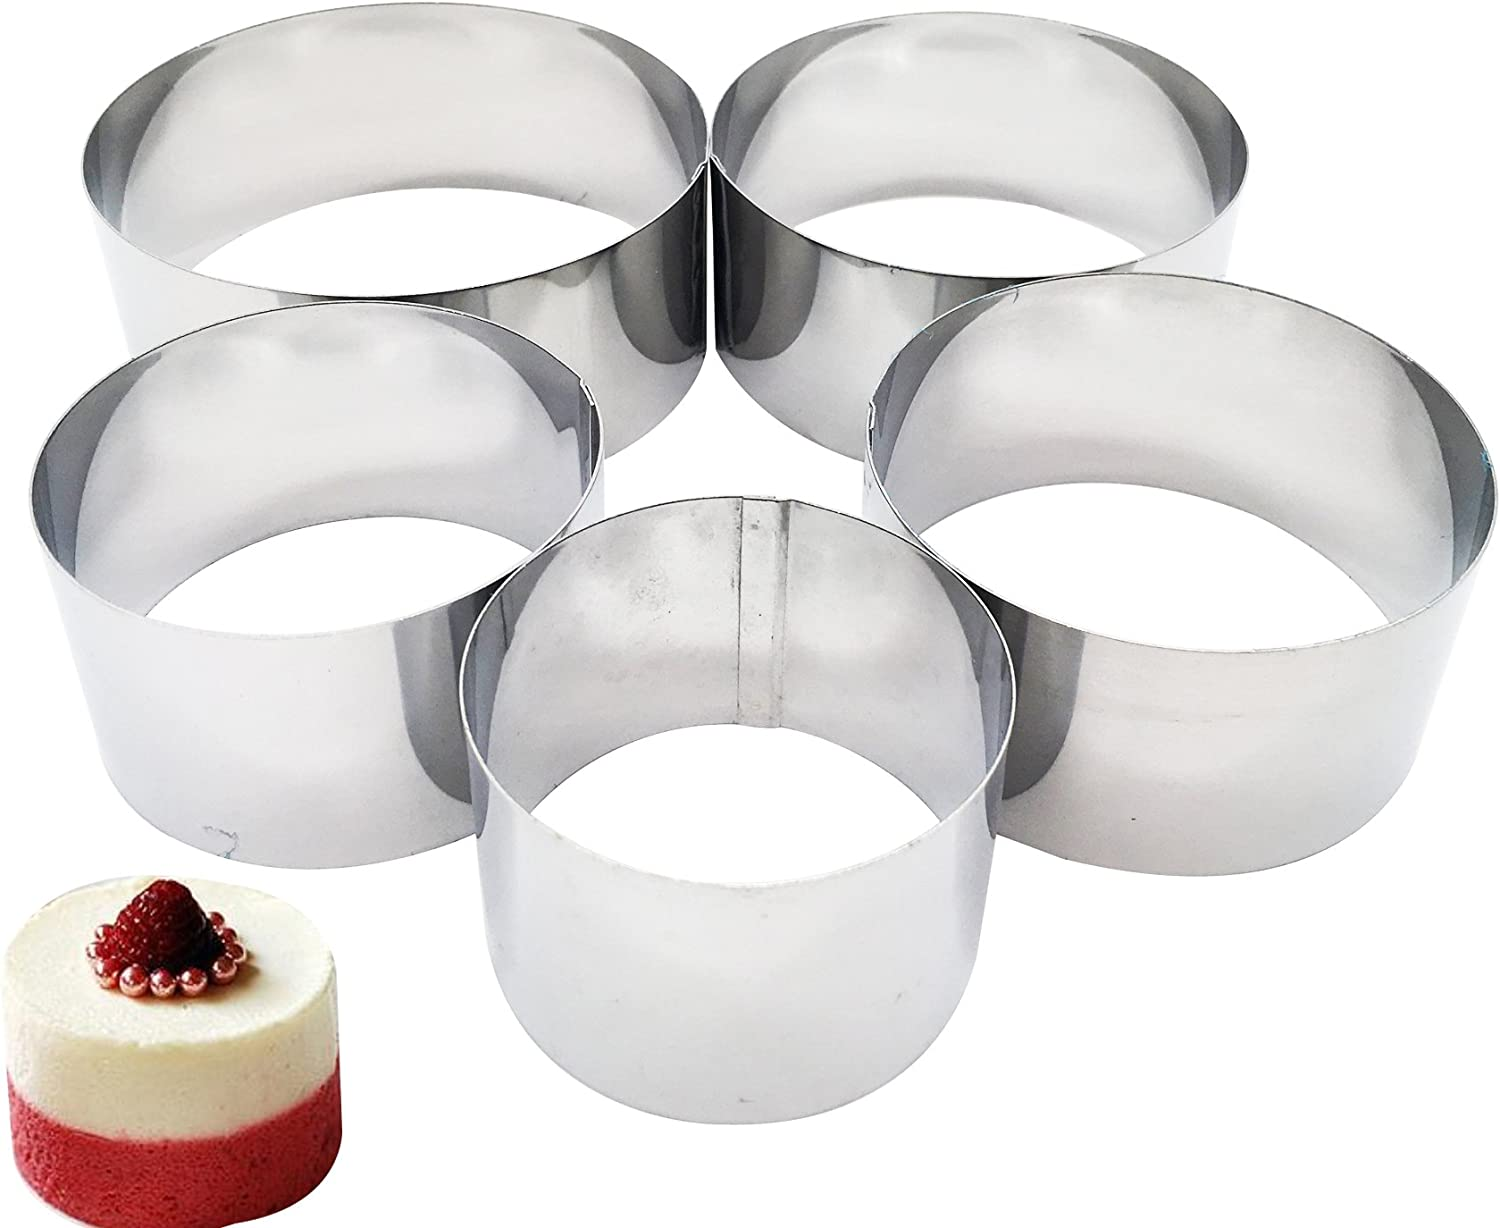 Set of 5 Cooking Rings, Professional Stainless Steel Food Tower Presentation Cooking Rings -Round Forms